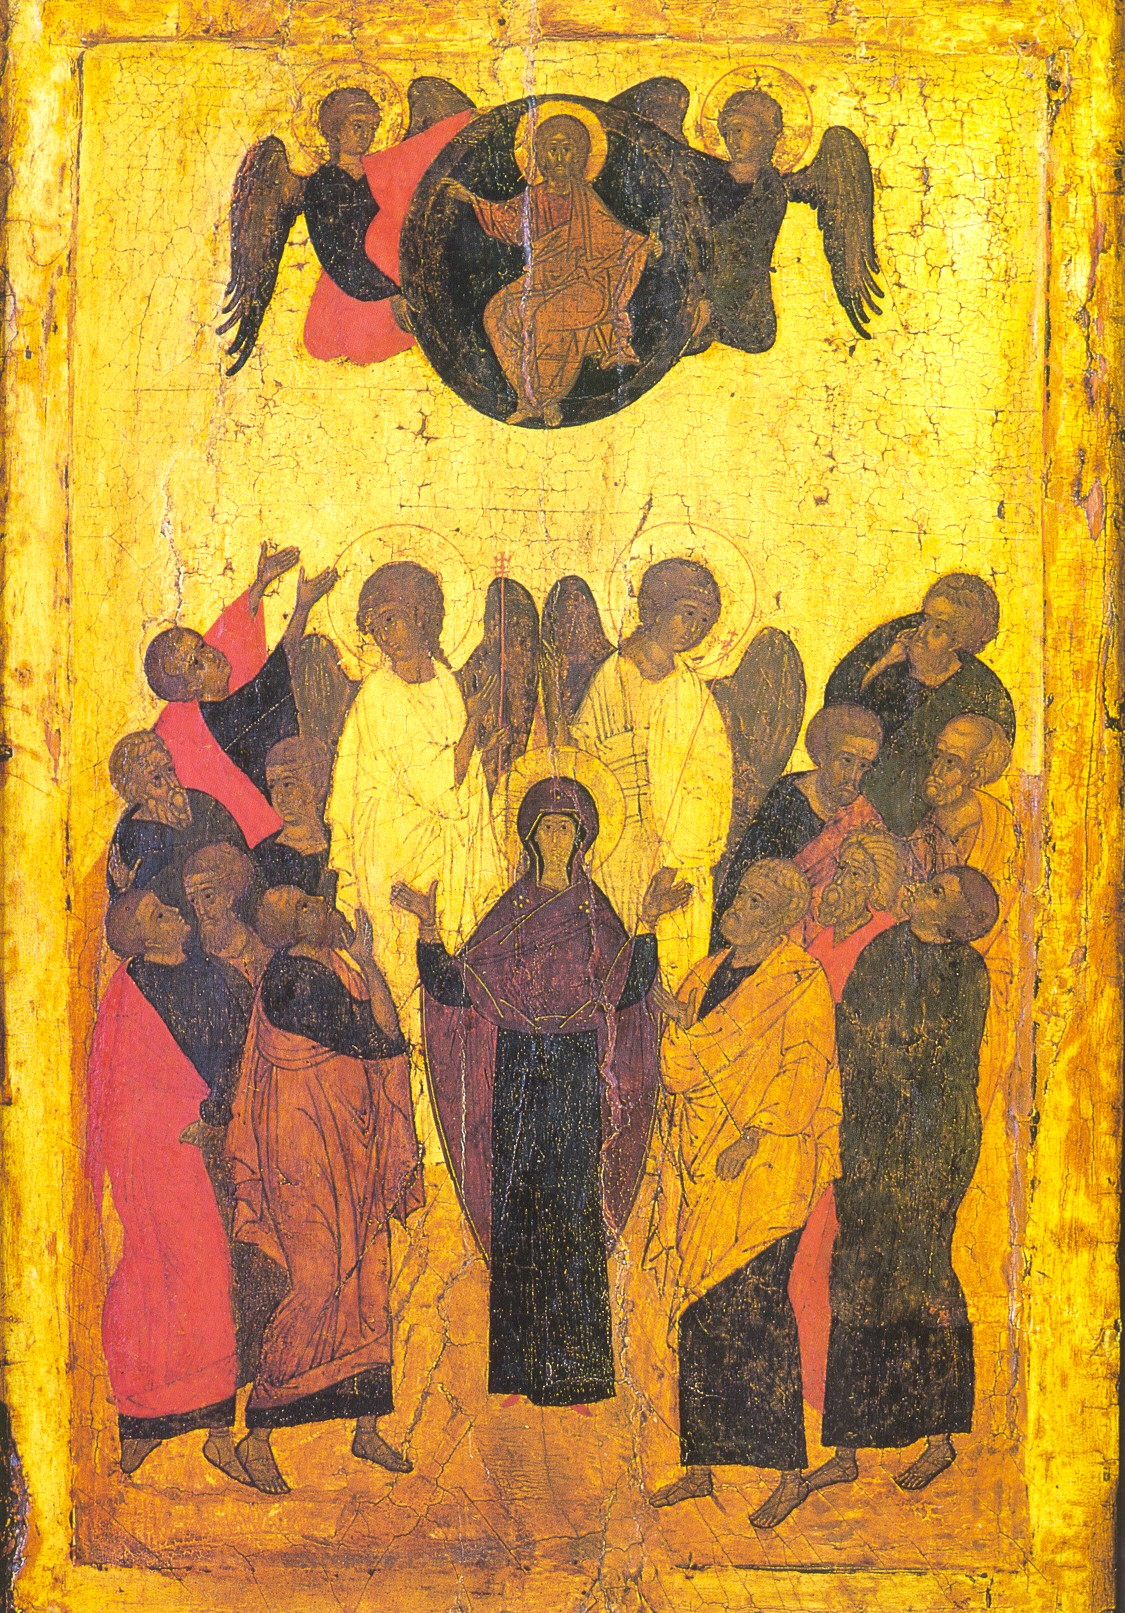 The Ascension informs of Jesus' second coming